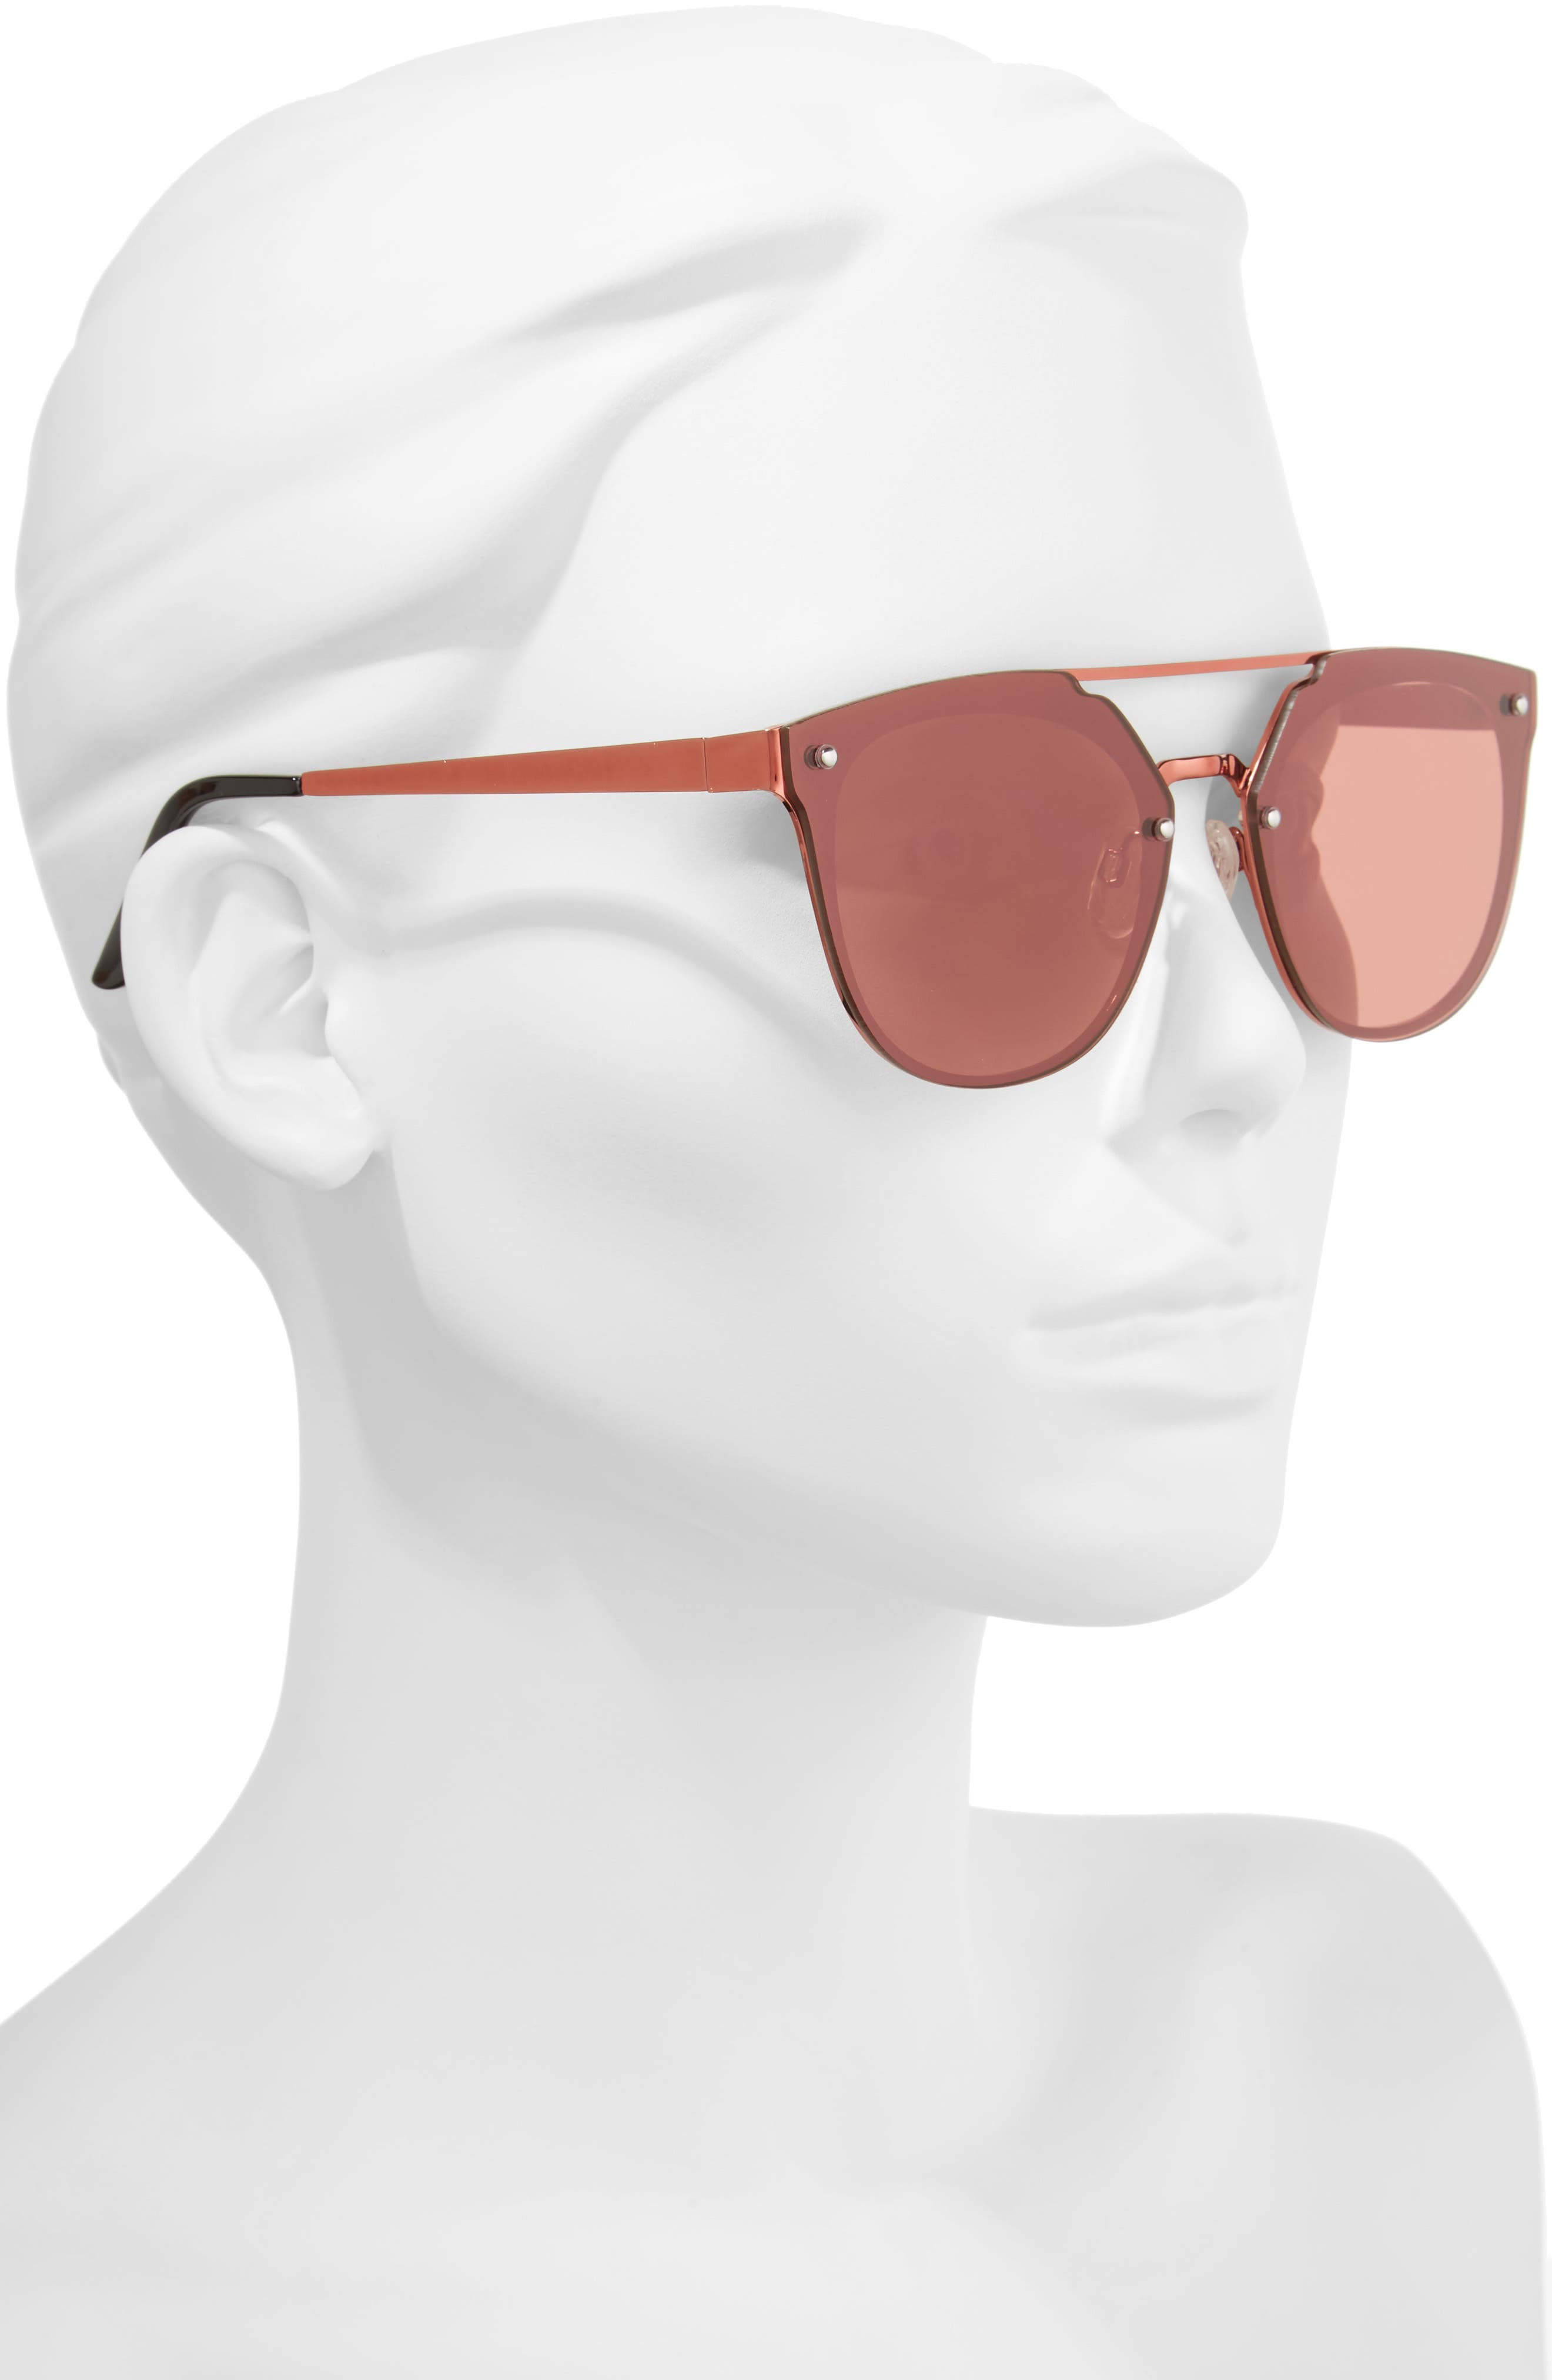 Mirrored Aviator Sunglasses,                             Alternate thumbnail 2, color,                             Pink/ Pink